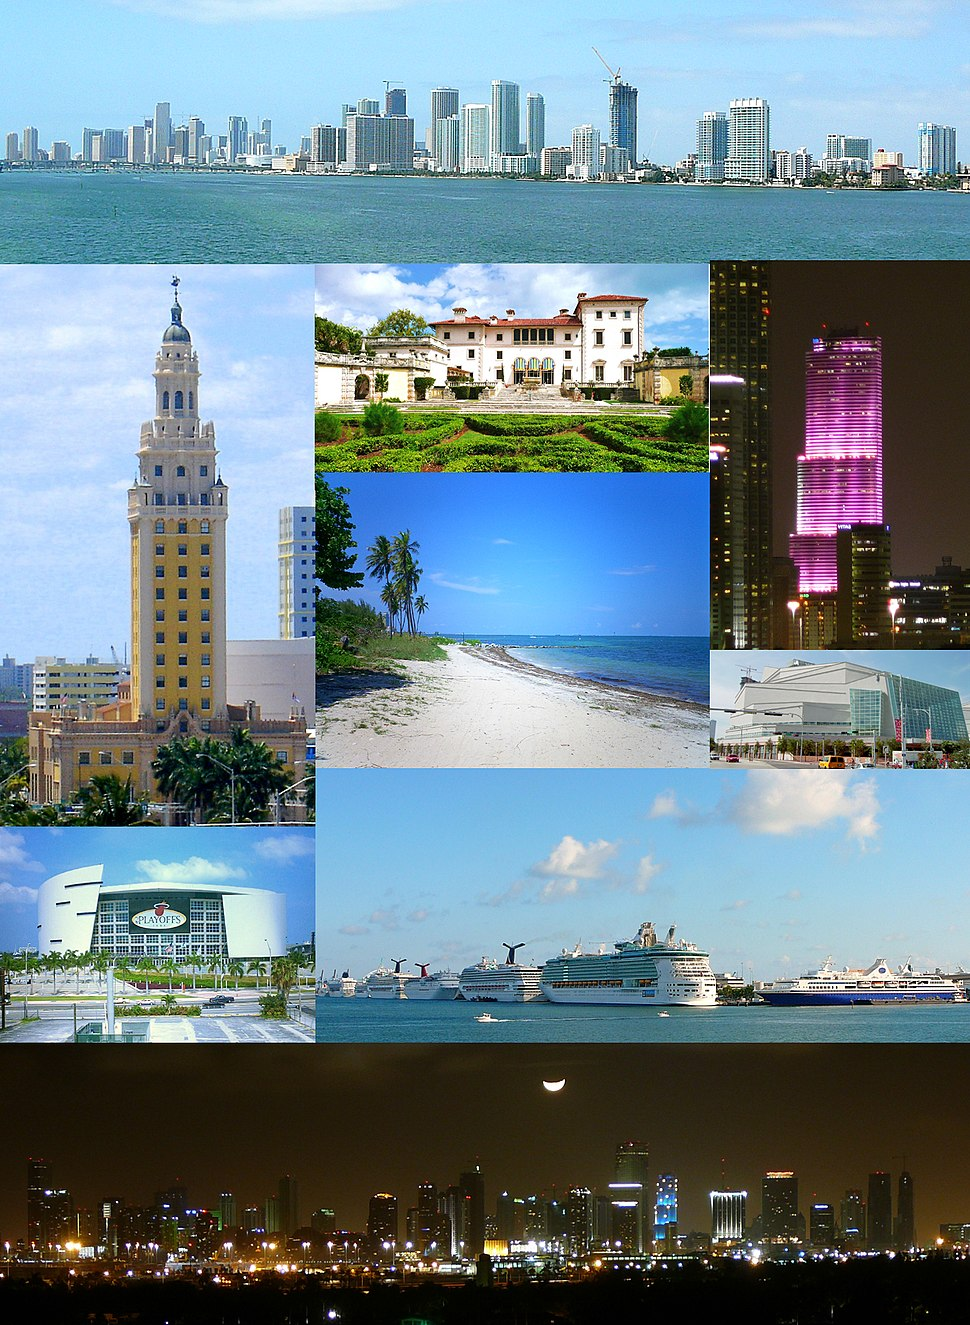 From top, left to right: Skyline of Downtown, Freedom Tower, Villa Vizcaya, Miami Tower, Virginia Key Beach, Adrienne Arsht Center for the Performing Arts, American Airlines Arena, Port of Miami, the Moon over Miami